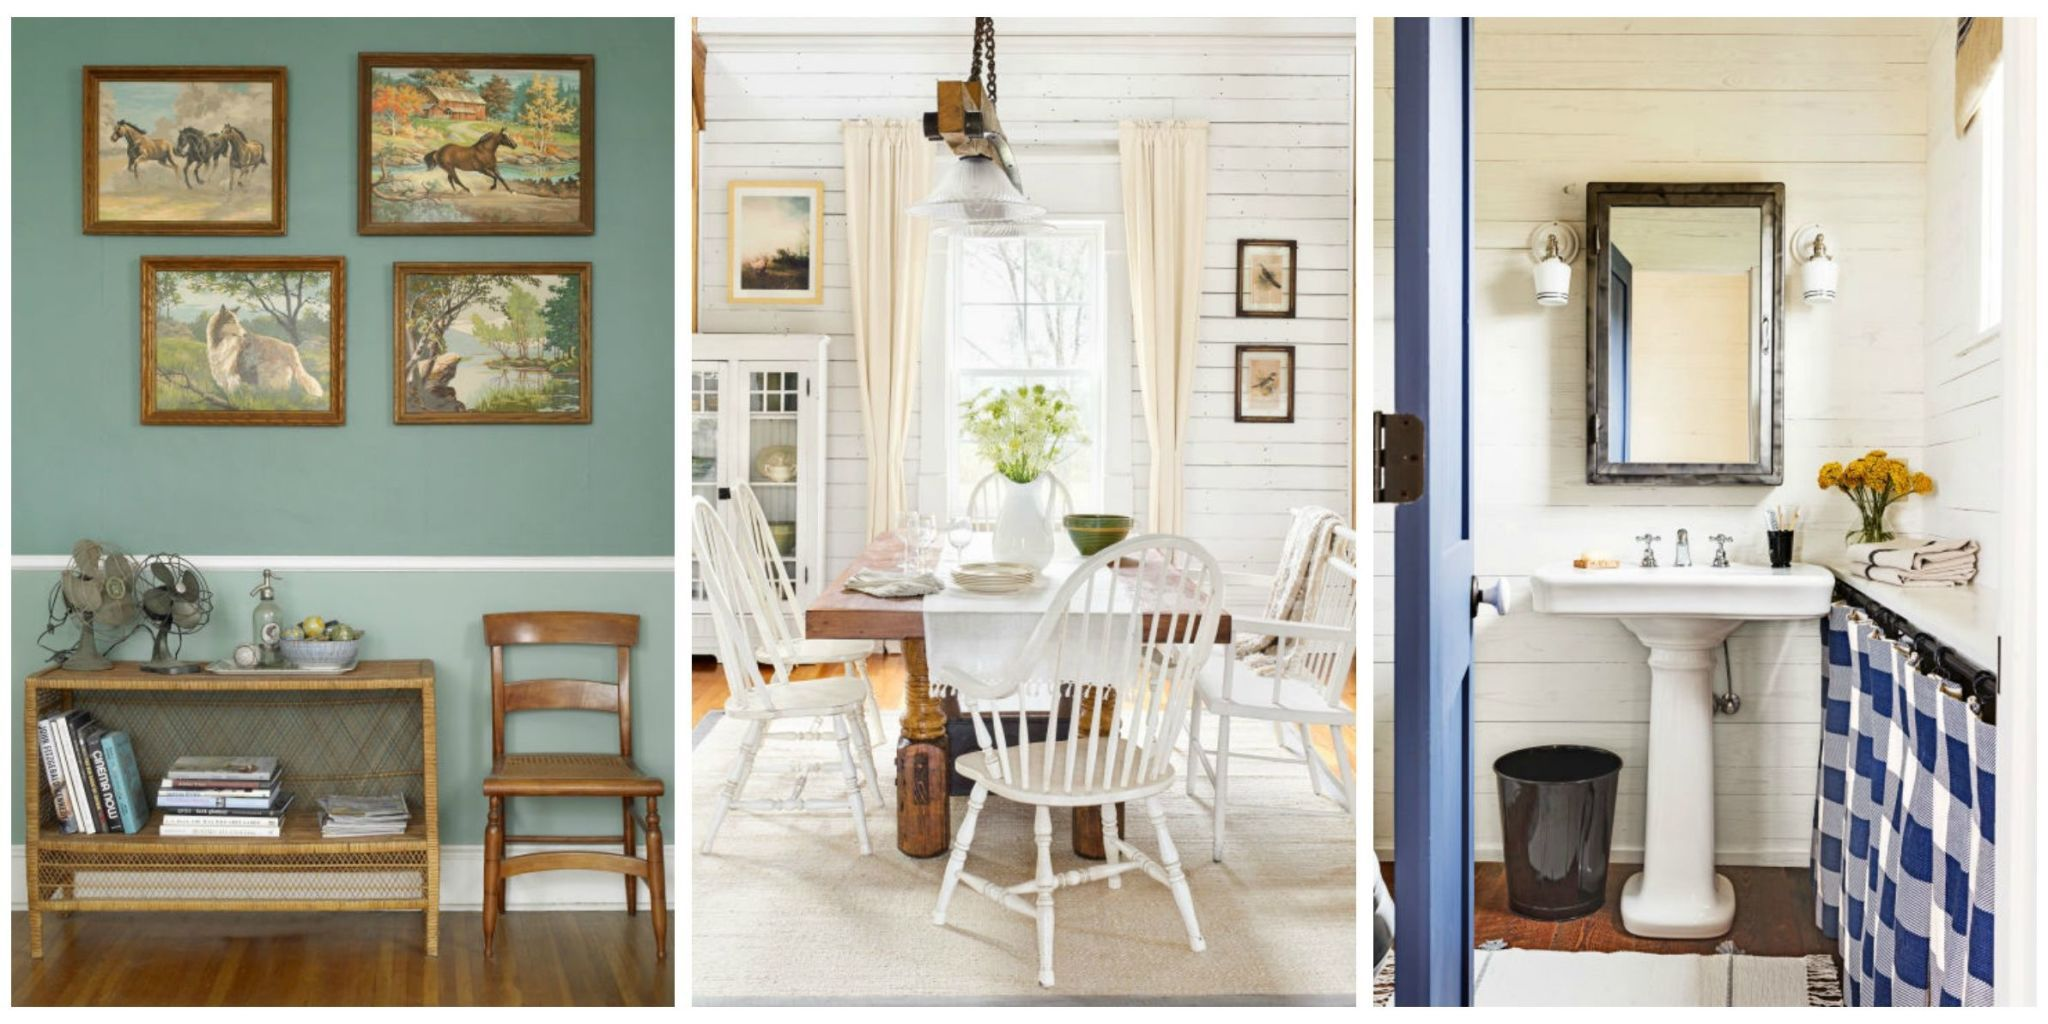 38 Budget-Friendly Home Decorating Ideas